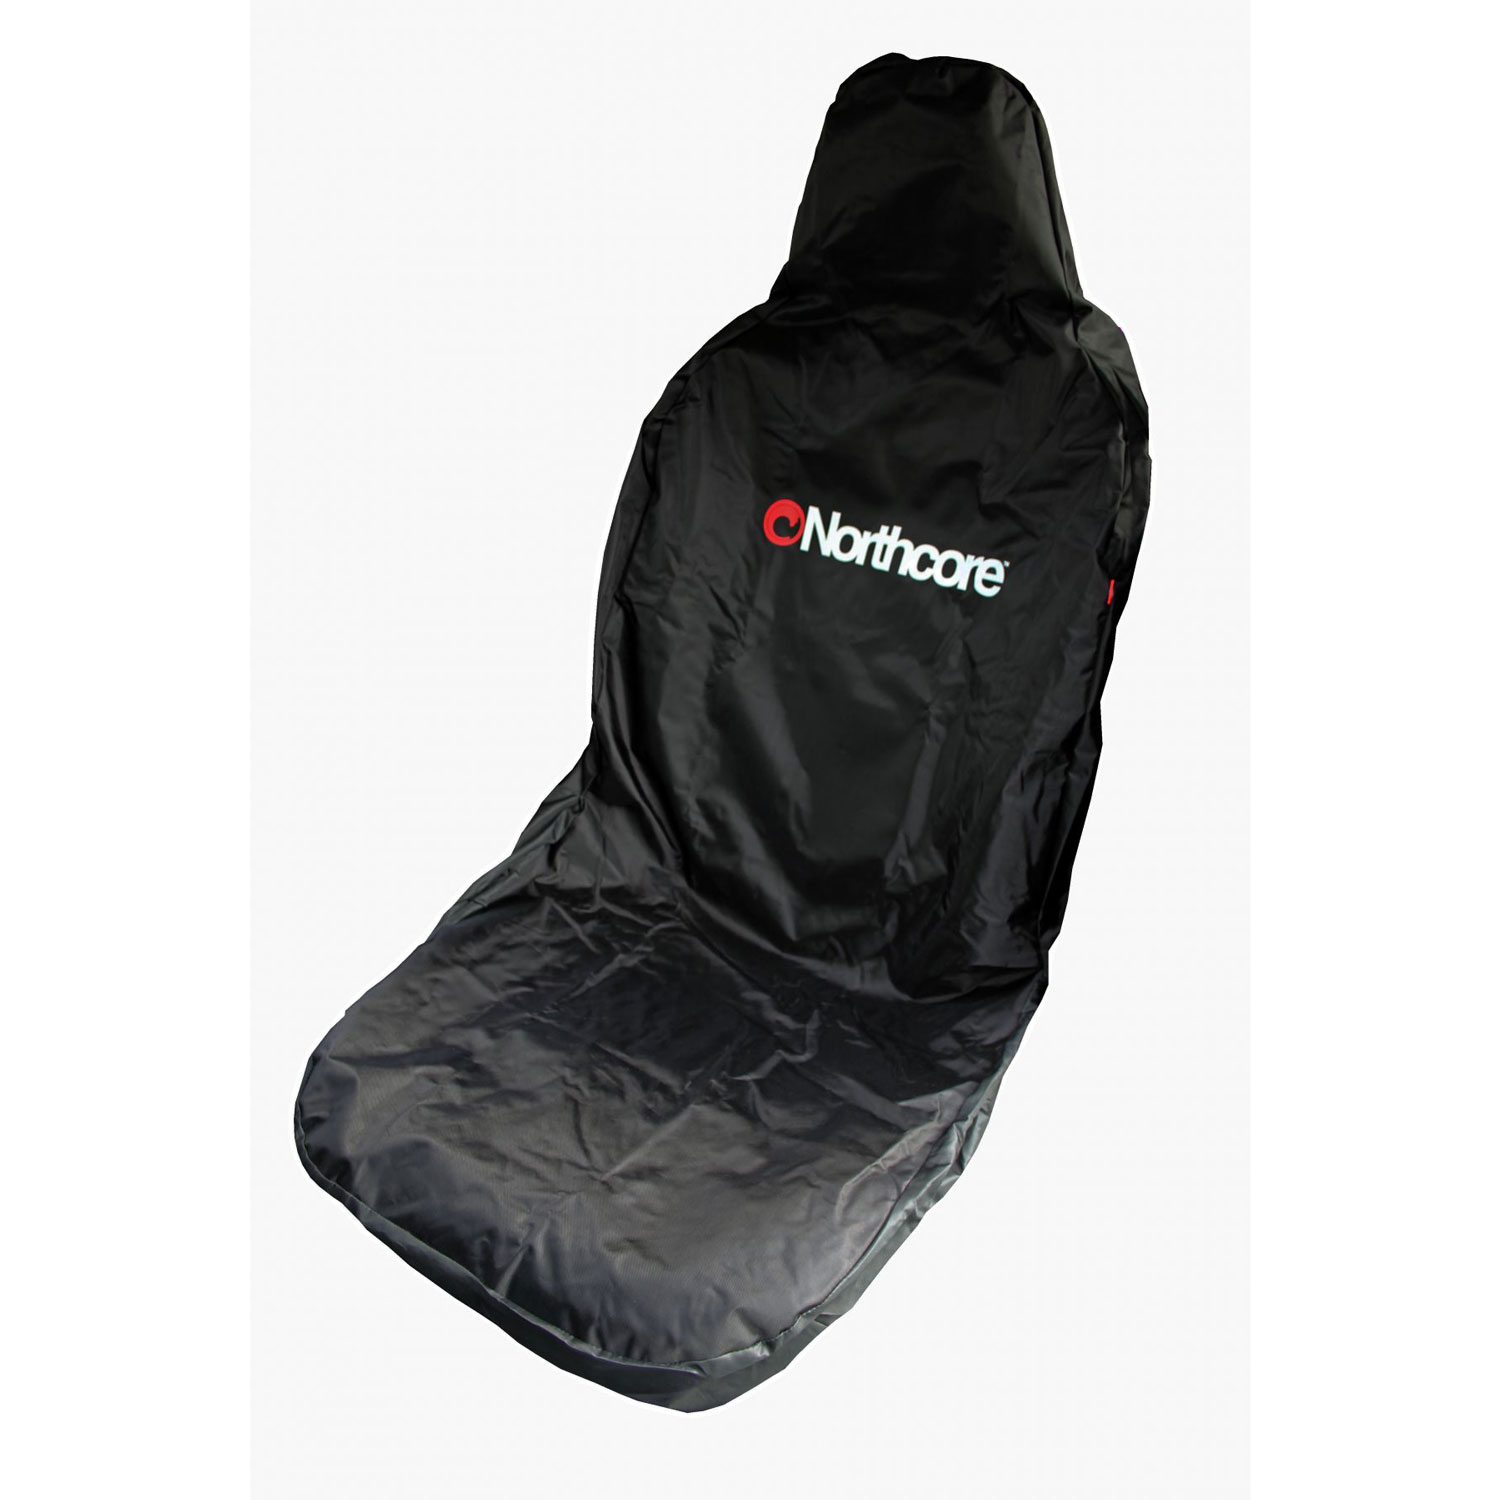 Northcore Single Van Car Seat Cover